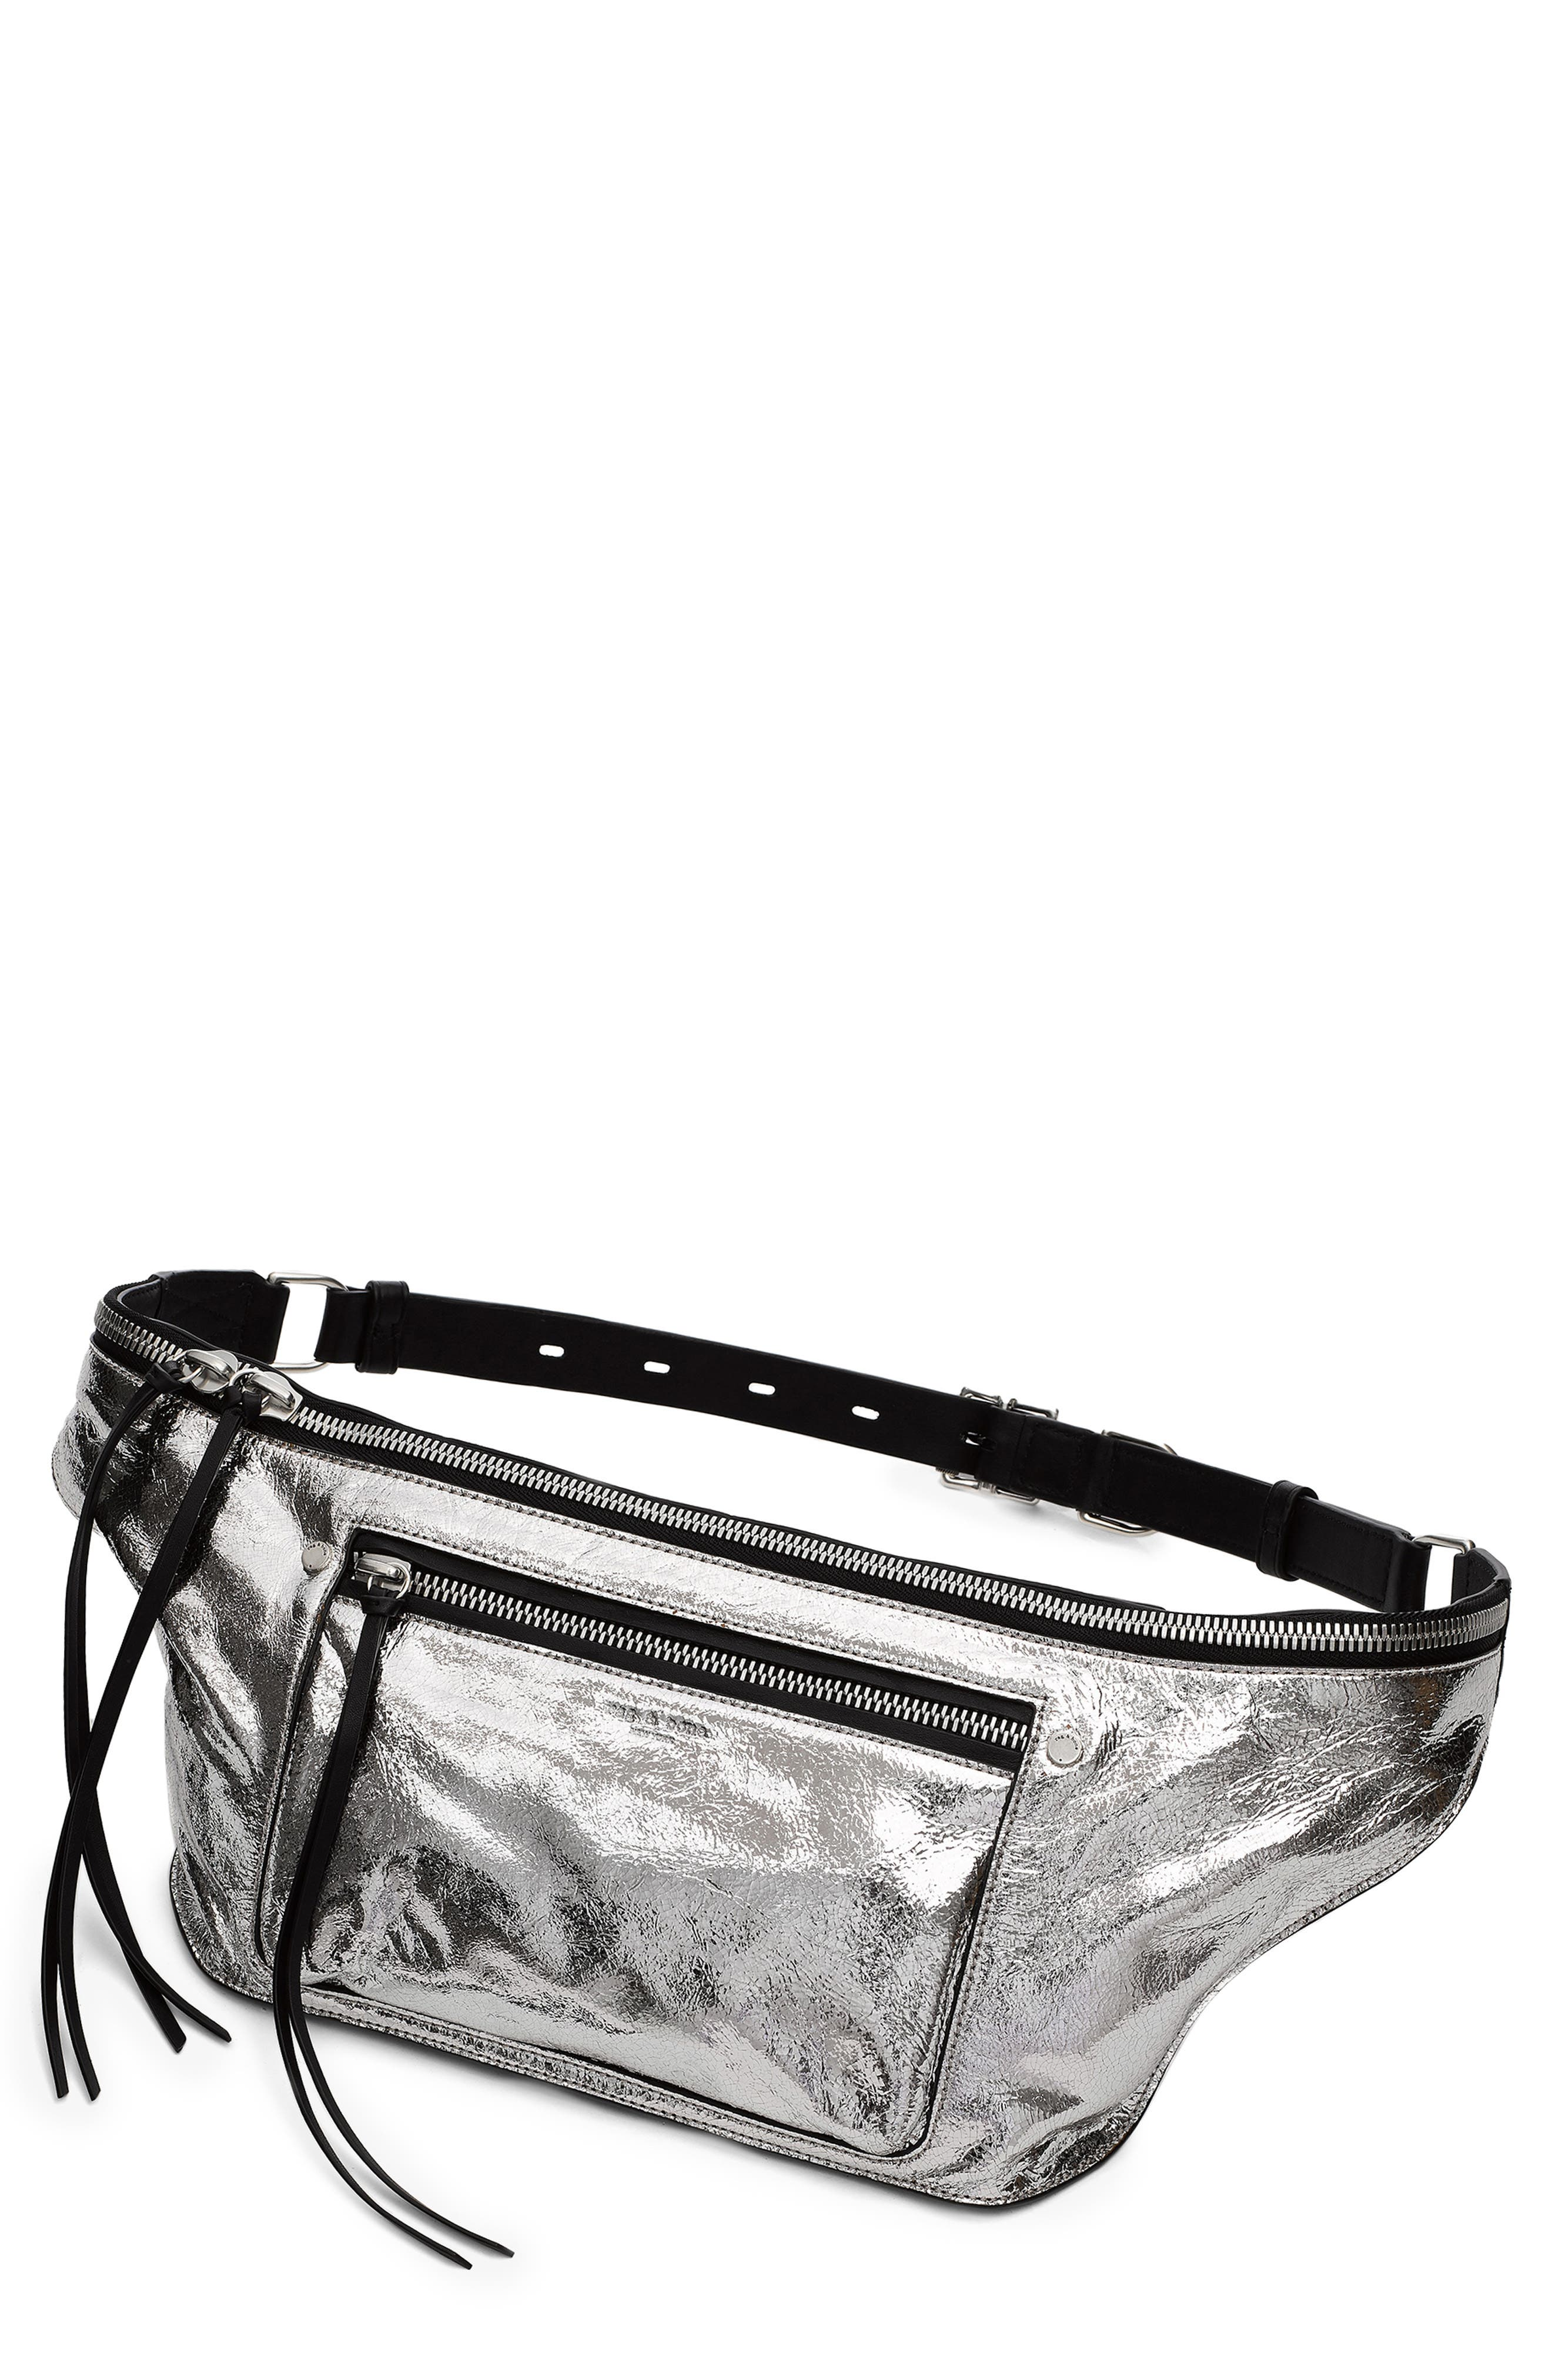 Large Elliot Metallic Leather Fanny Pack,                             Main thumbnail 1, color,                             SILVER CRACKLE